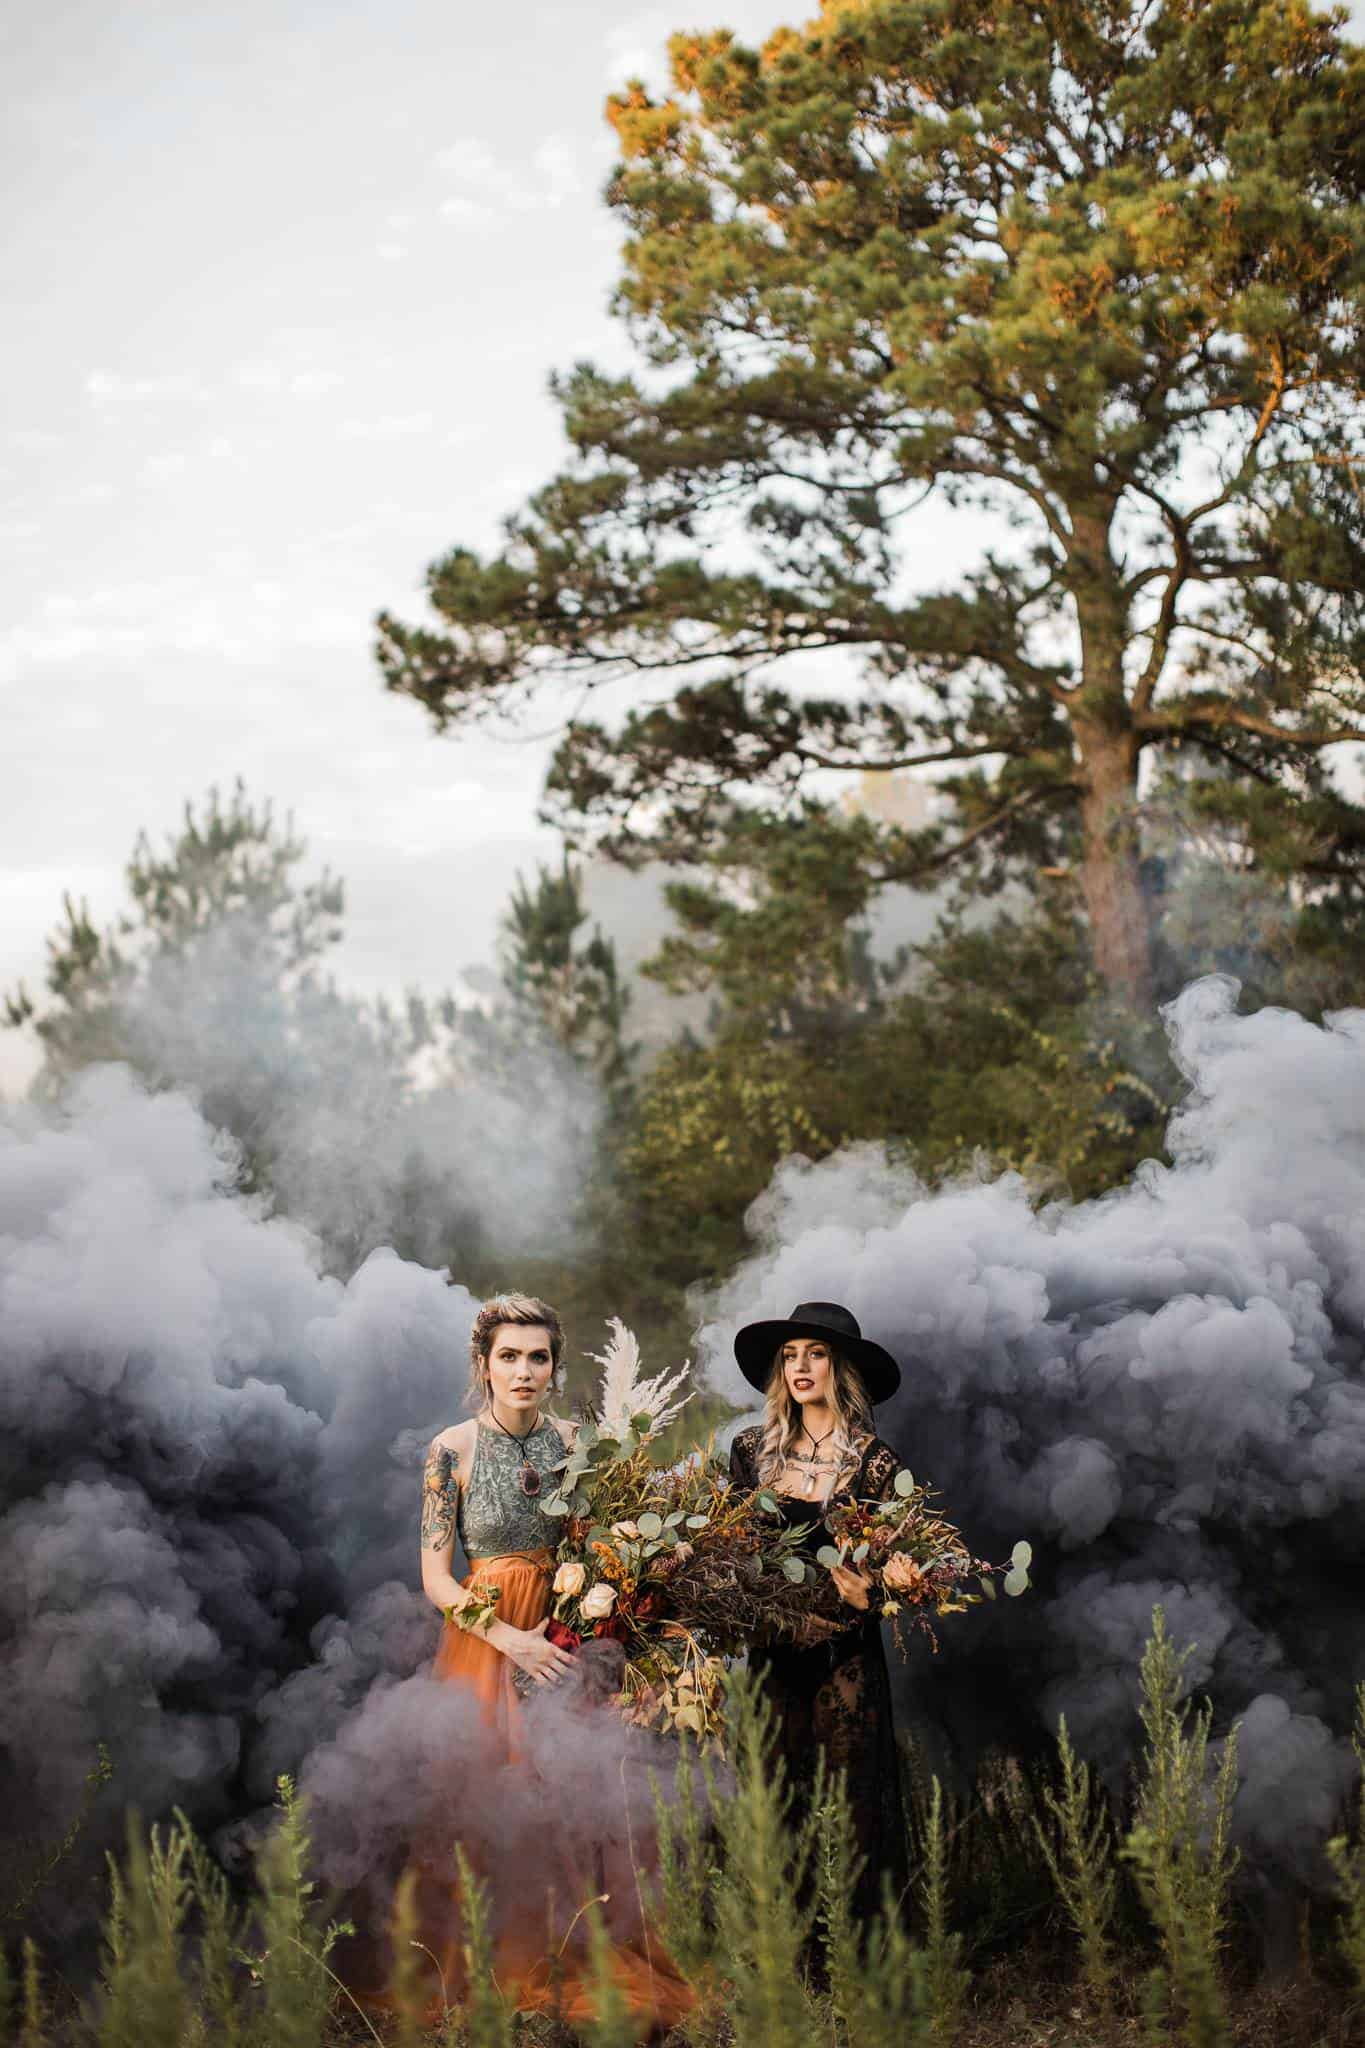 A Creative Photo of two women in a field covered in smoke